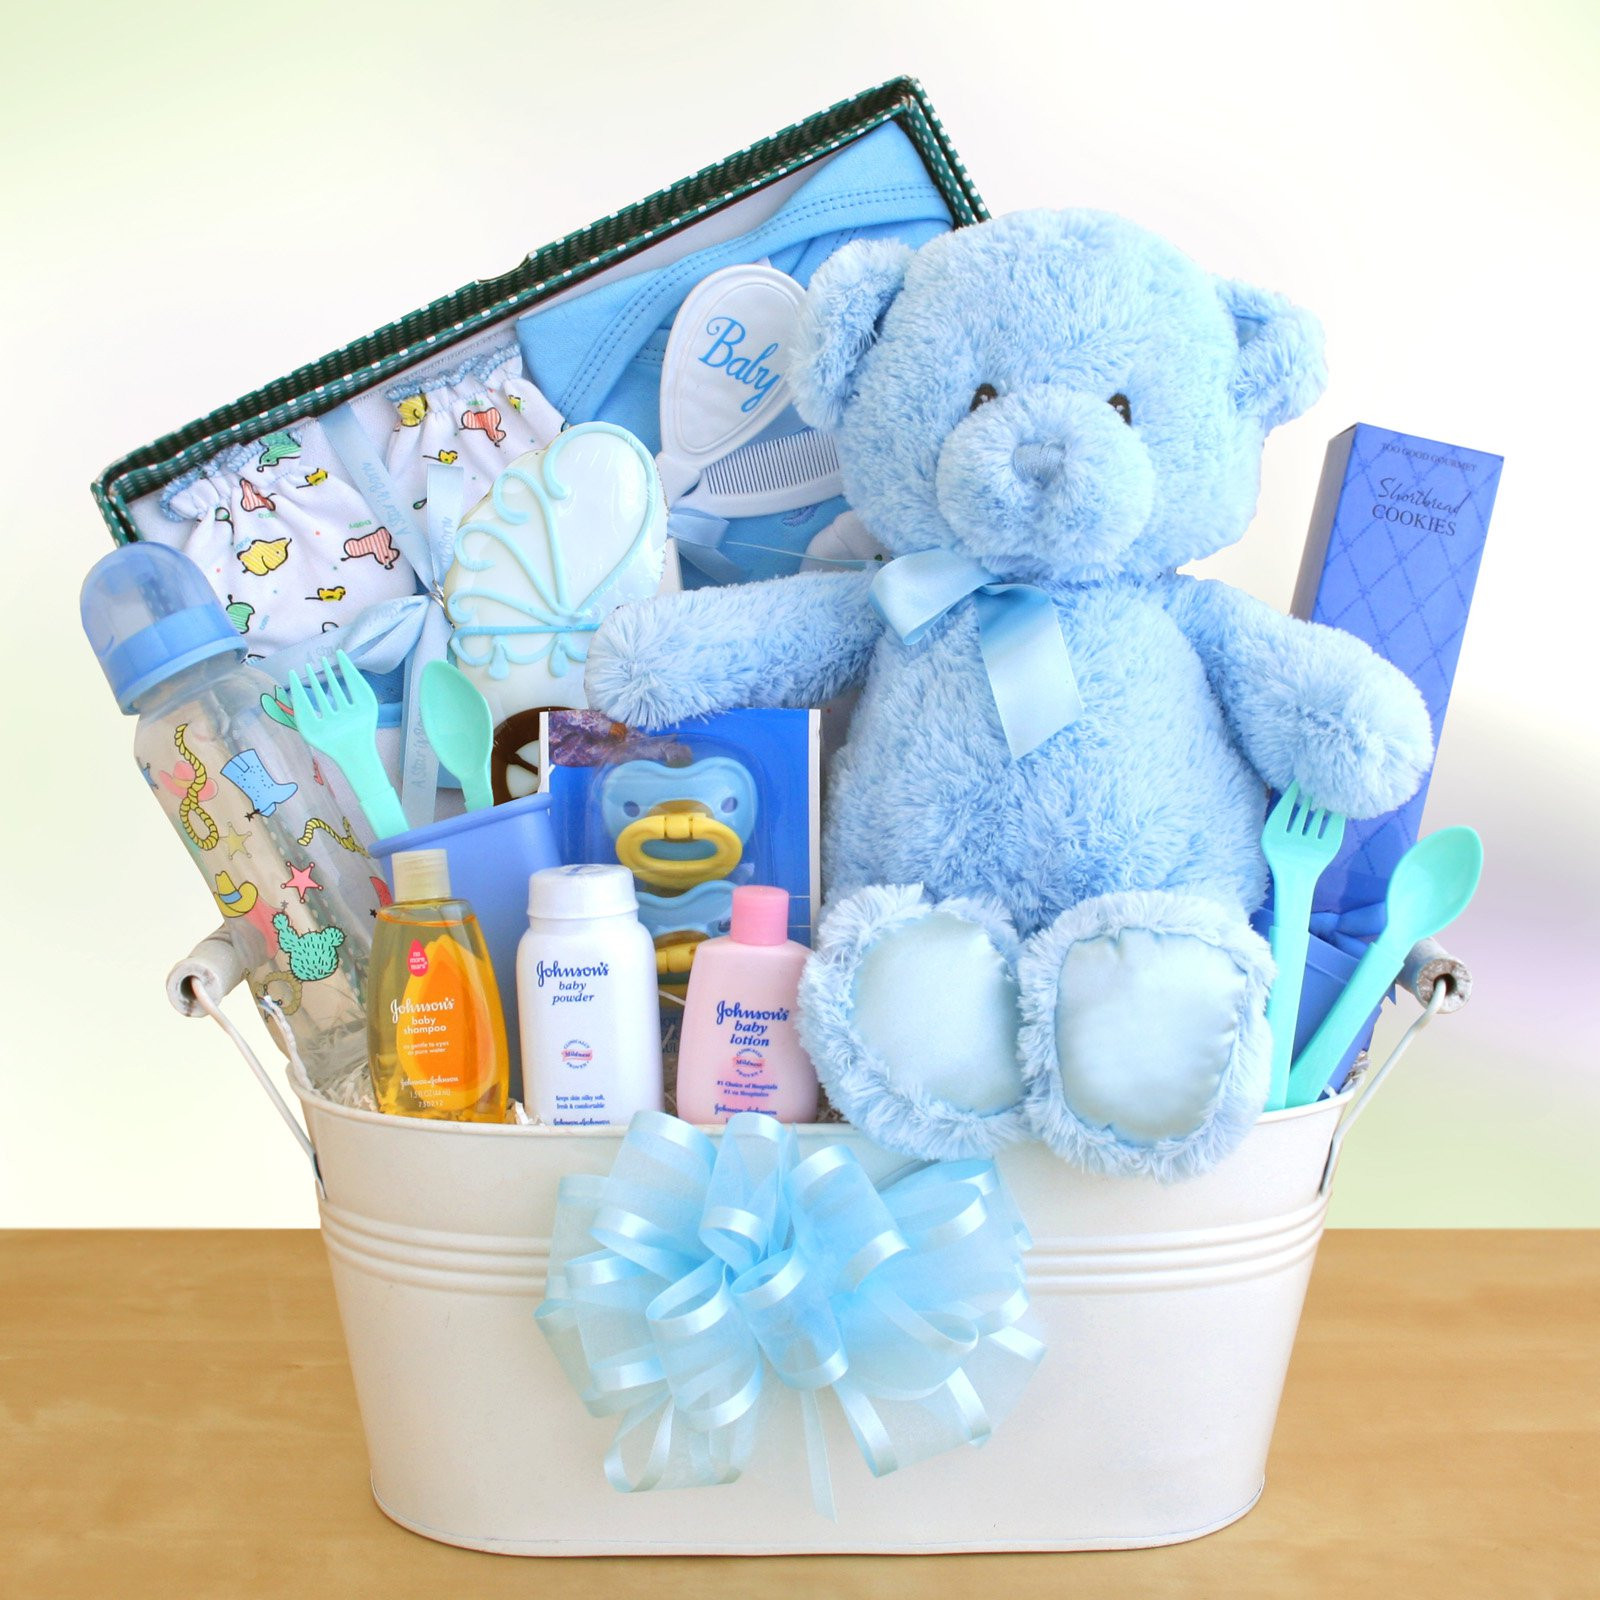 Gift Ideas For A Baby Shower  New Arrival Baby Boy Gift Basket Gift Baskets by